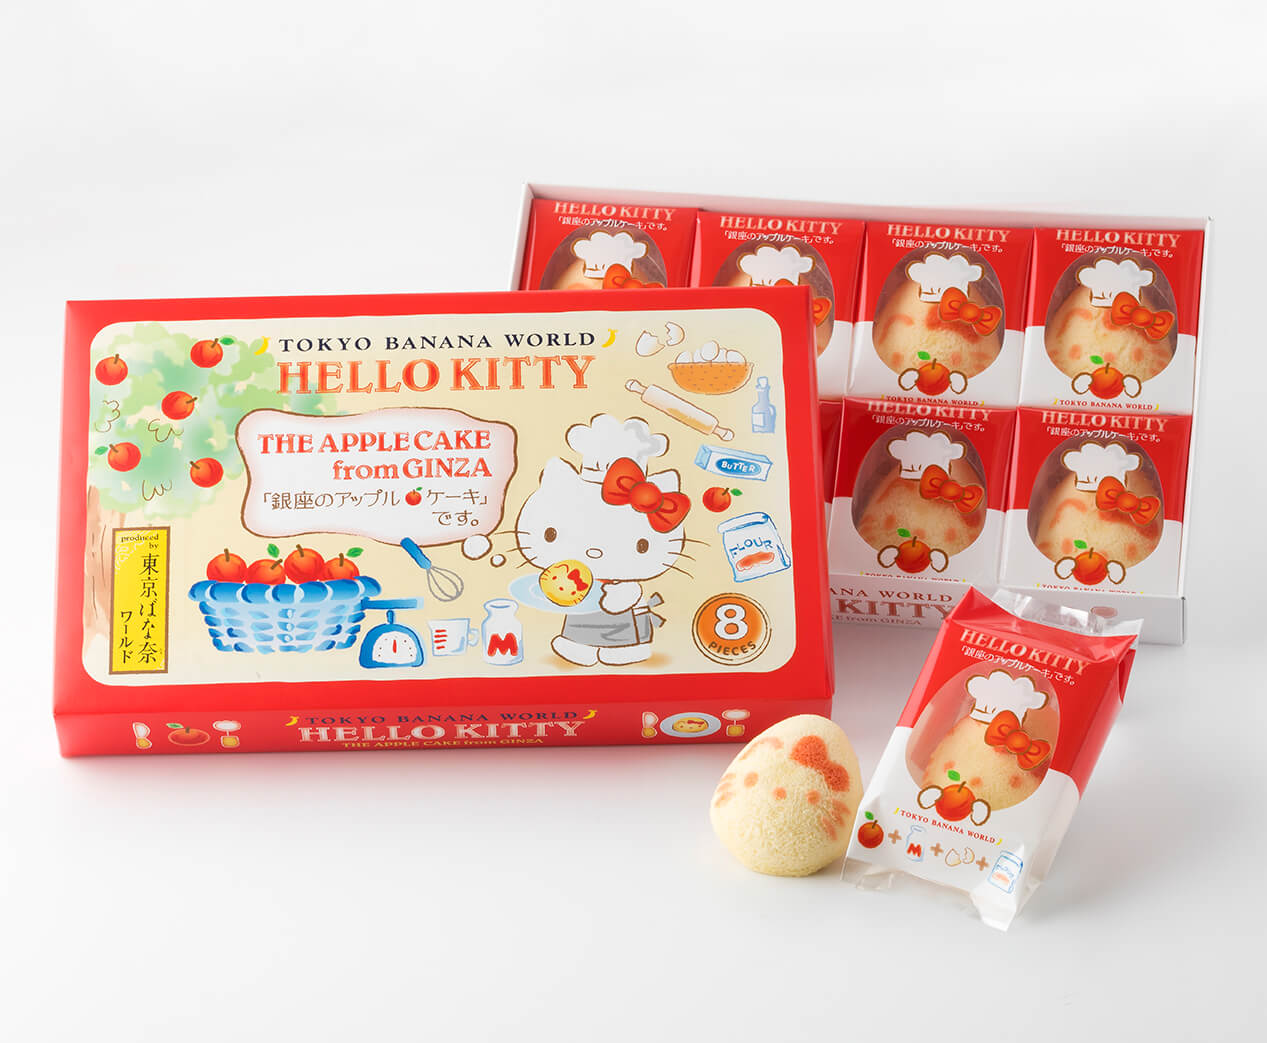 Tokyo Banana World & Hello Kitty Apple Cake Collaboration | MOSHI